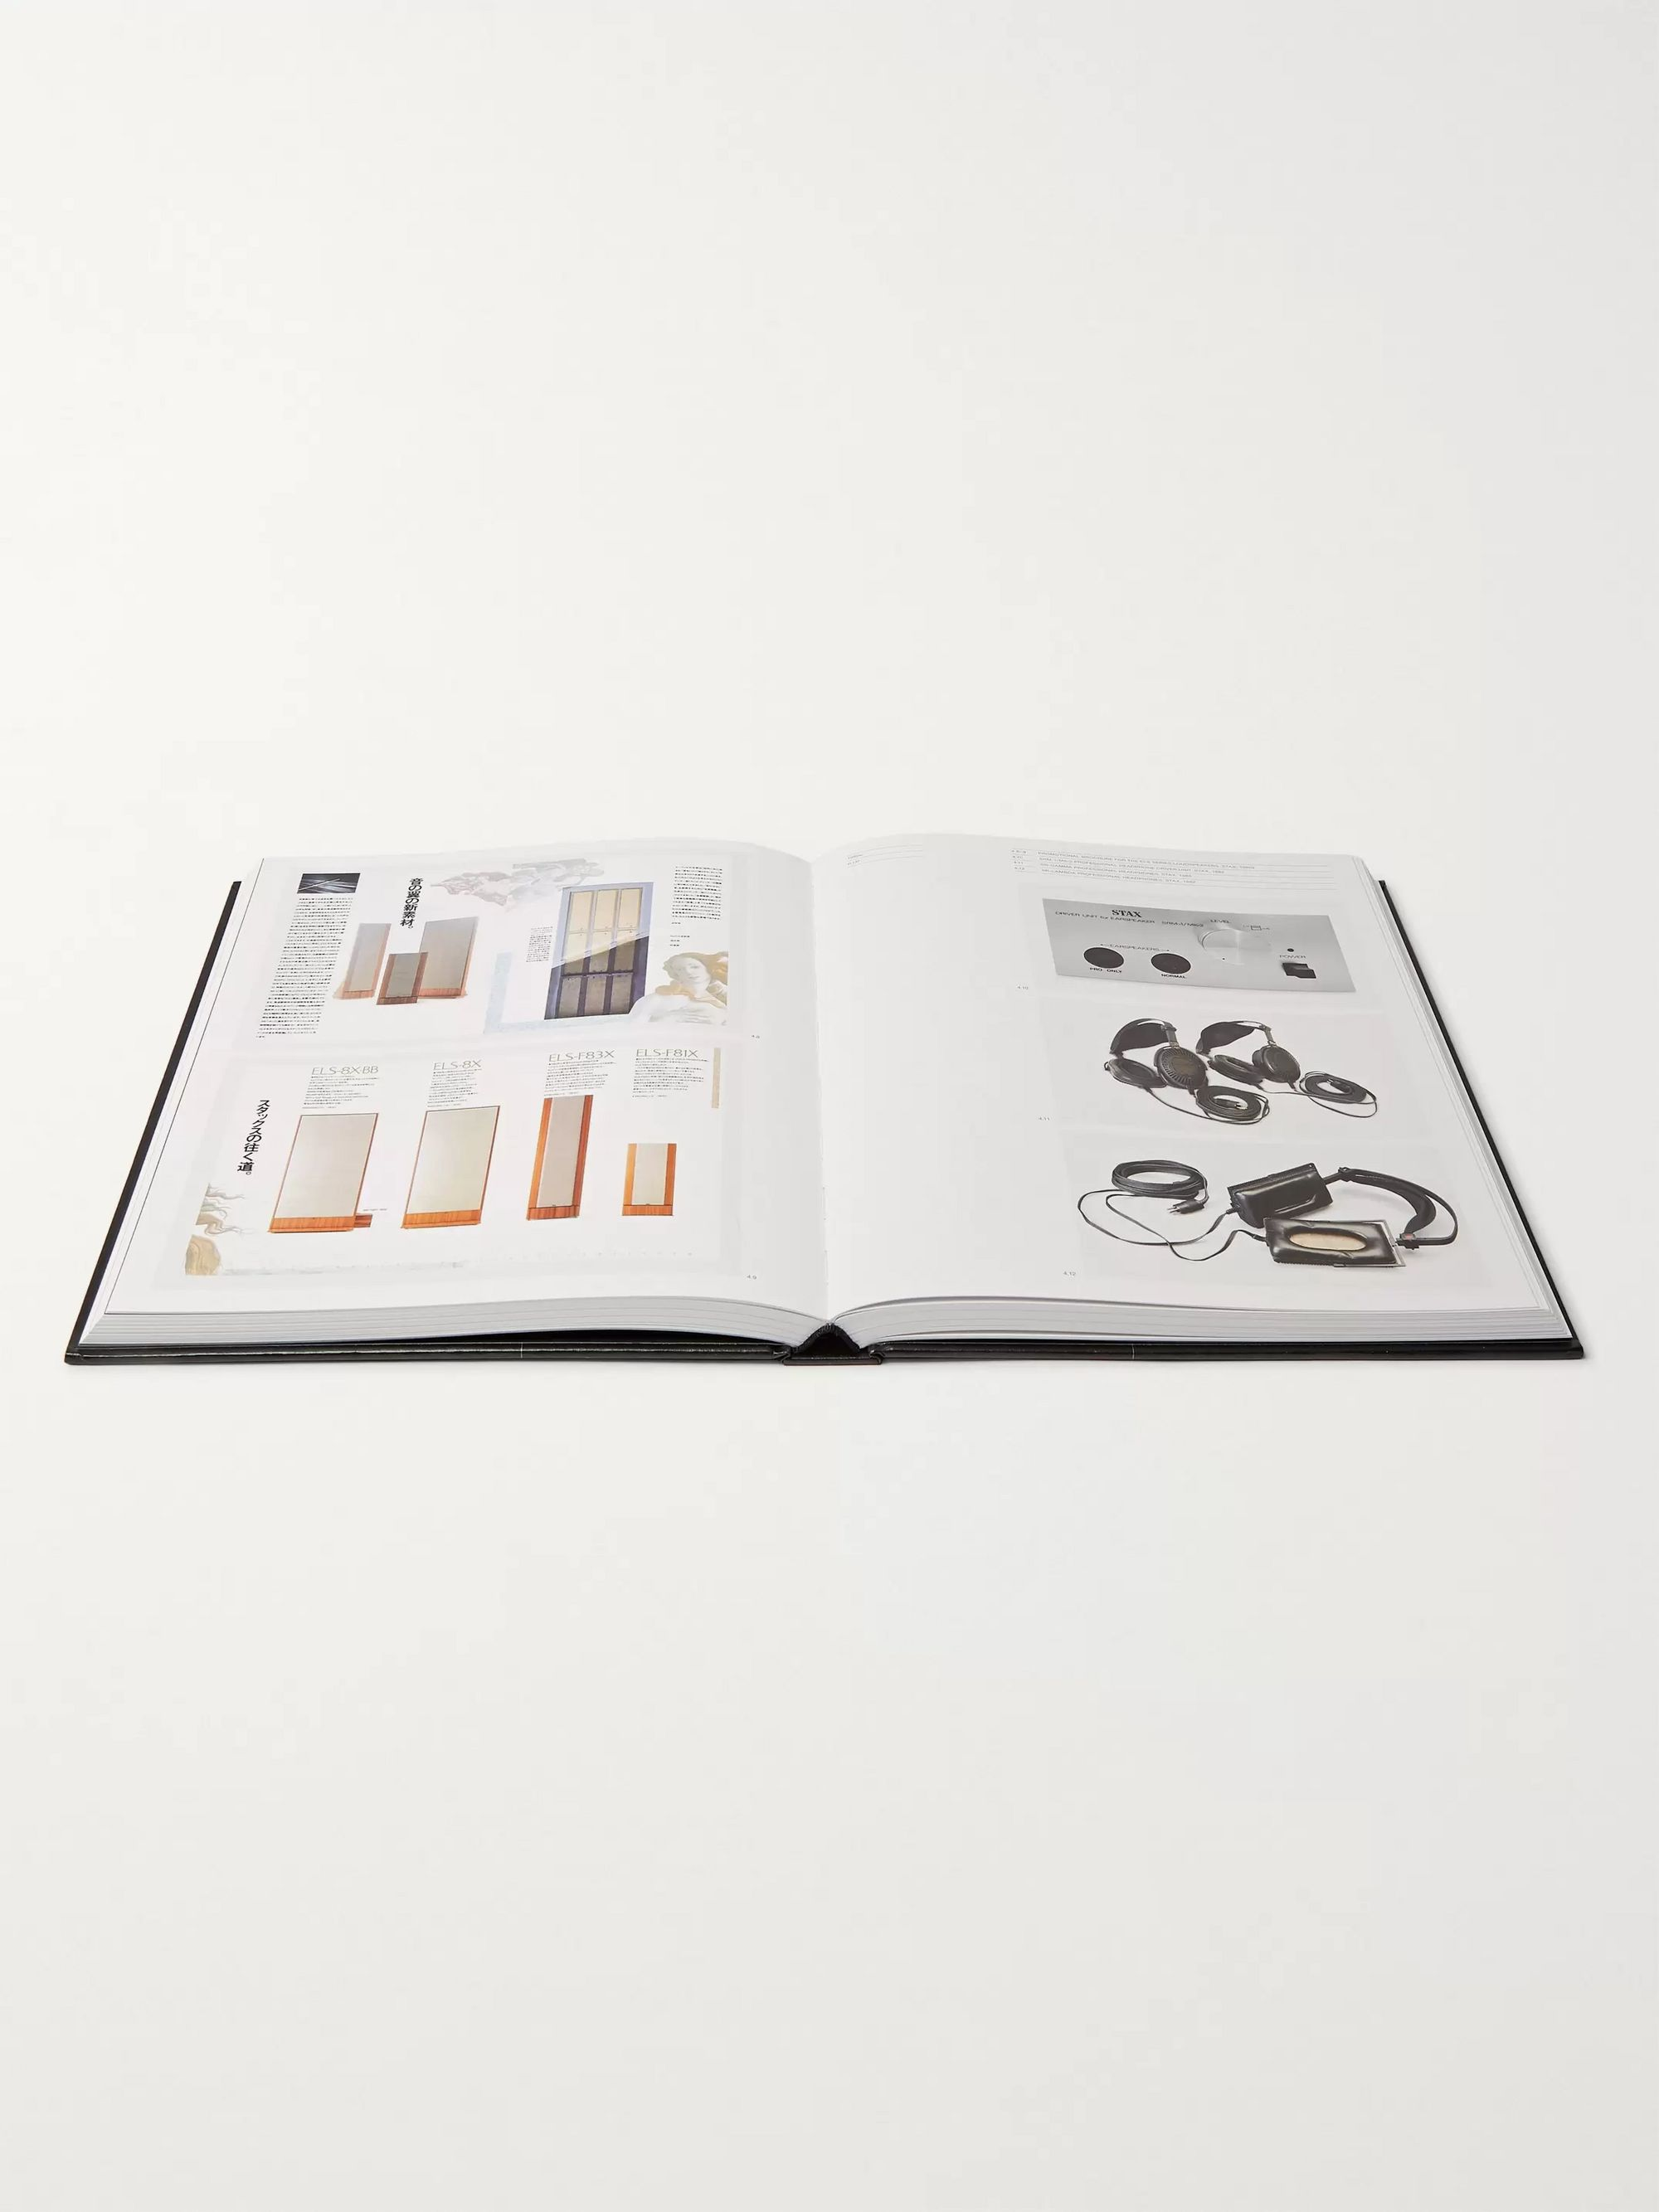 Phaidon Hi-Fi The History of High-End Audio Design Hardcover Book